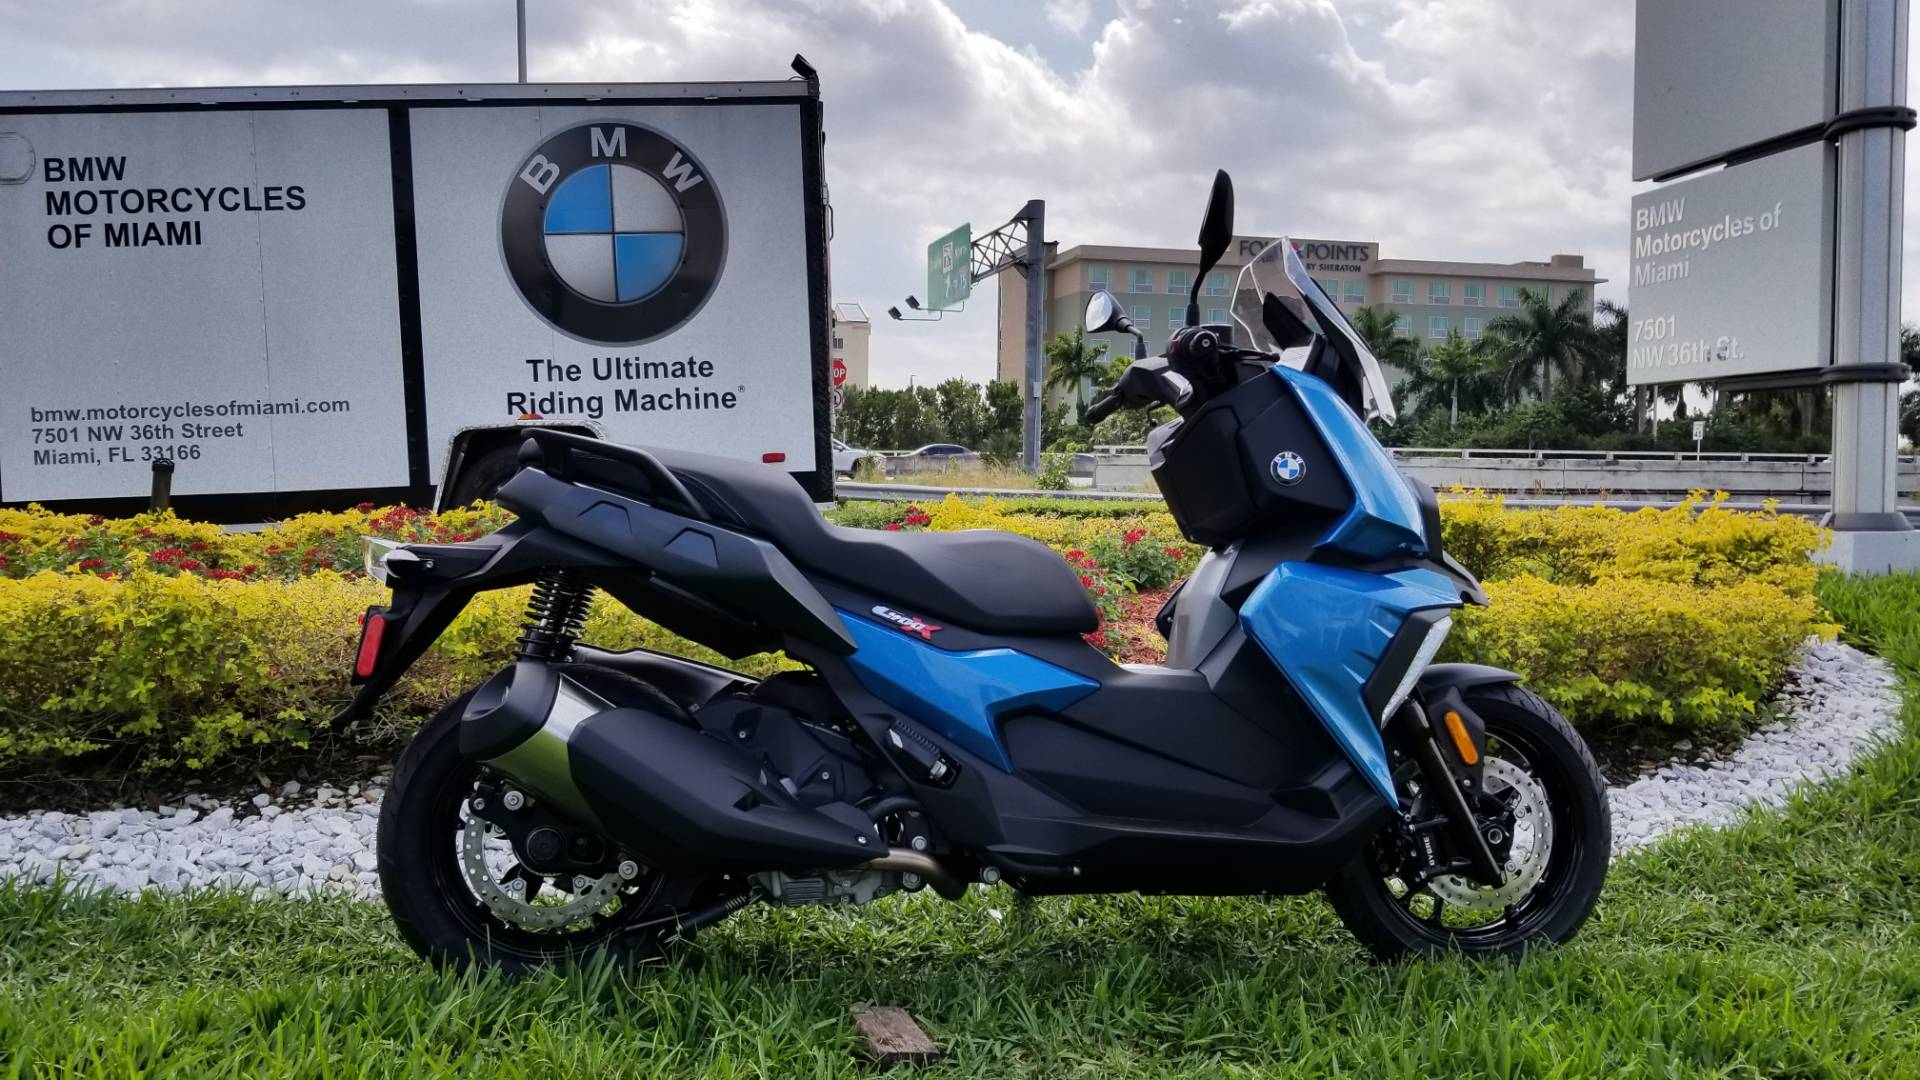 New 2019 BMW C 400 X for sale, BMW C 400X for sale, BMW Scooter, new BMW Scooter, C400X, BMW Motorcycles of Miami, Motorcycles of Miami, Motorcycles Miami - Photo 14